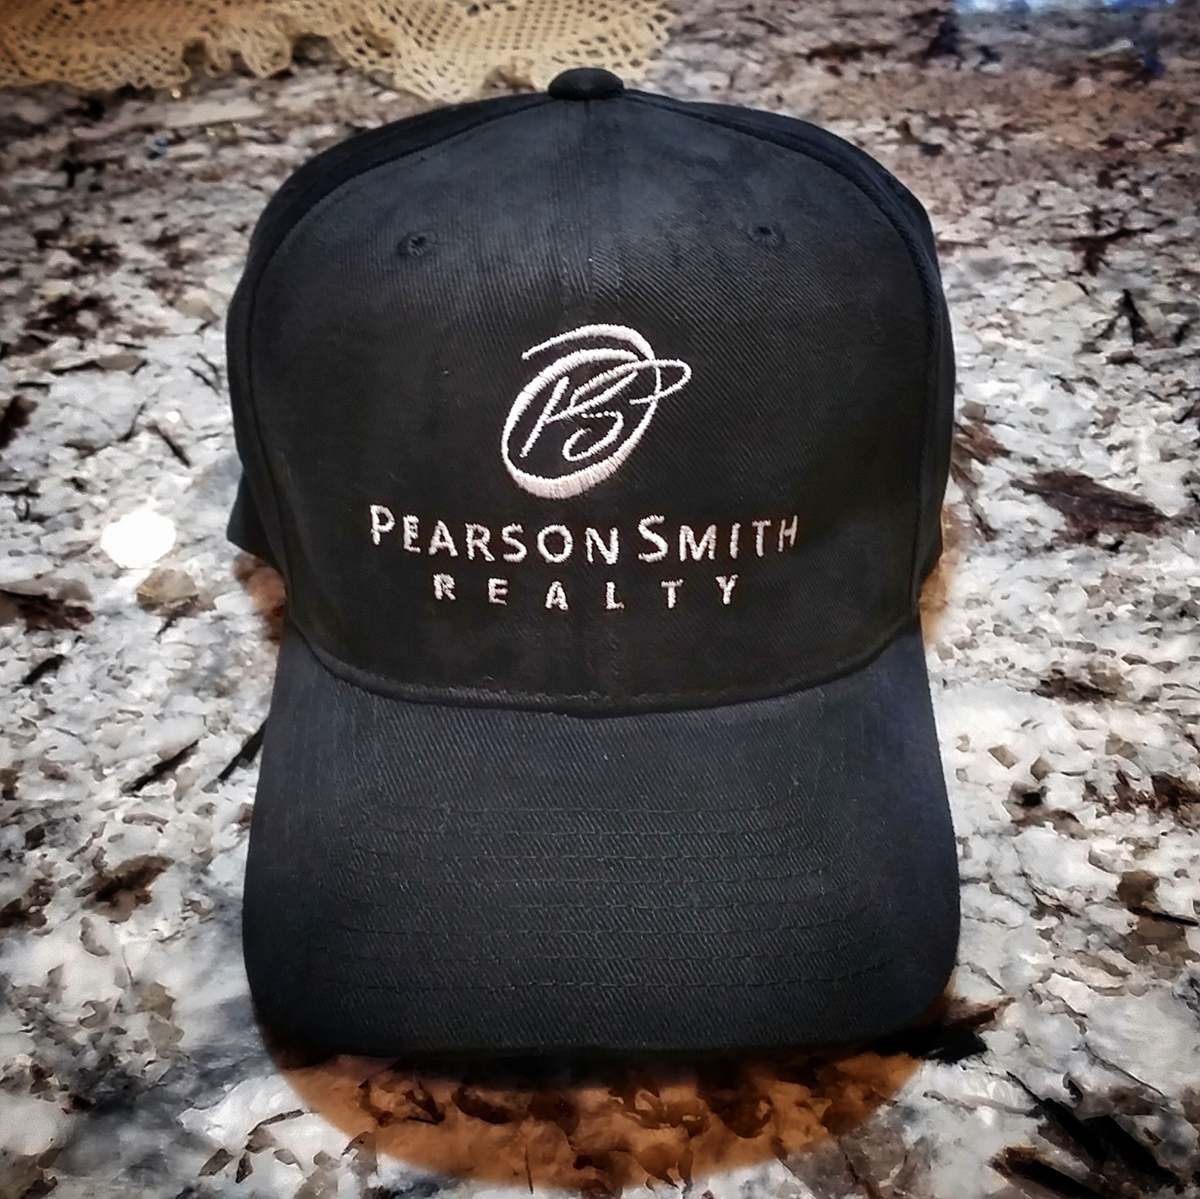 Pearson Smith Realty Embroidered Hat